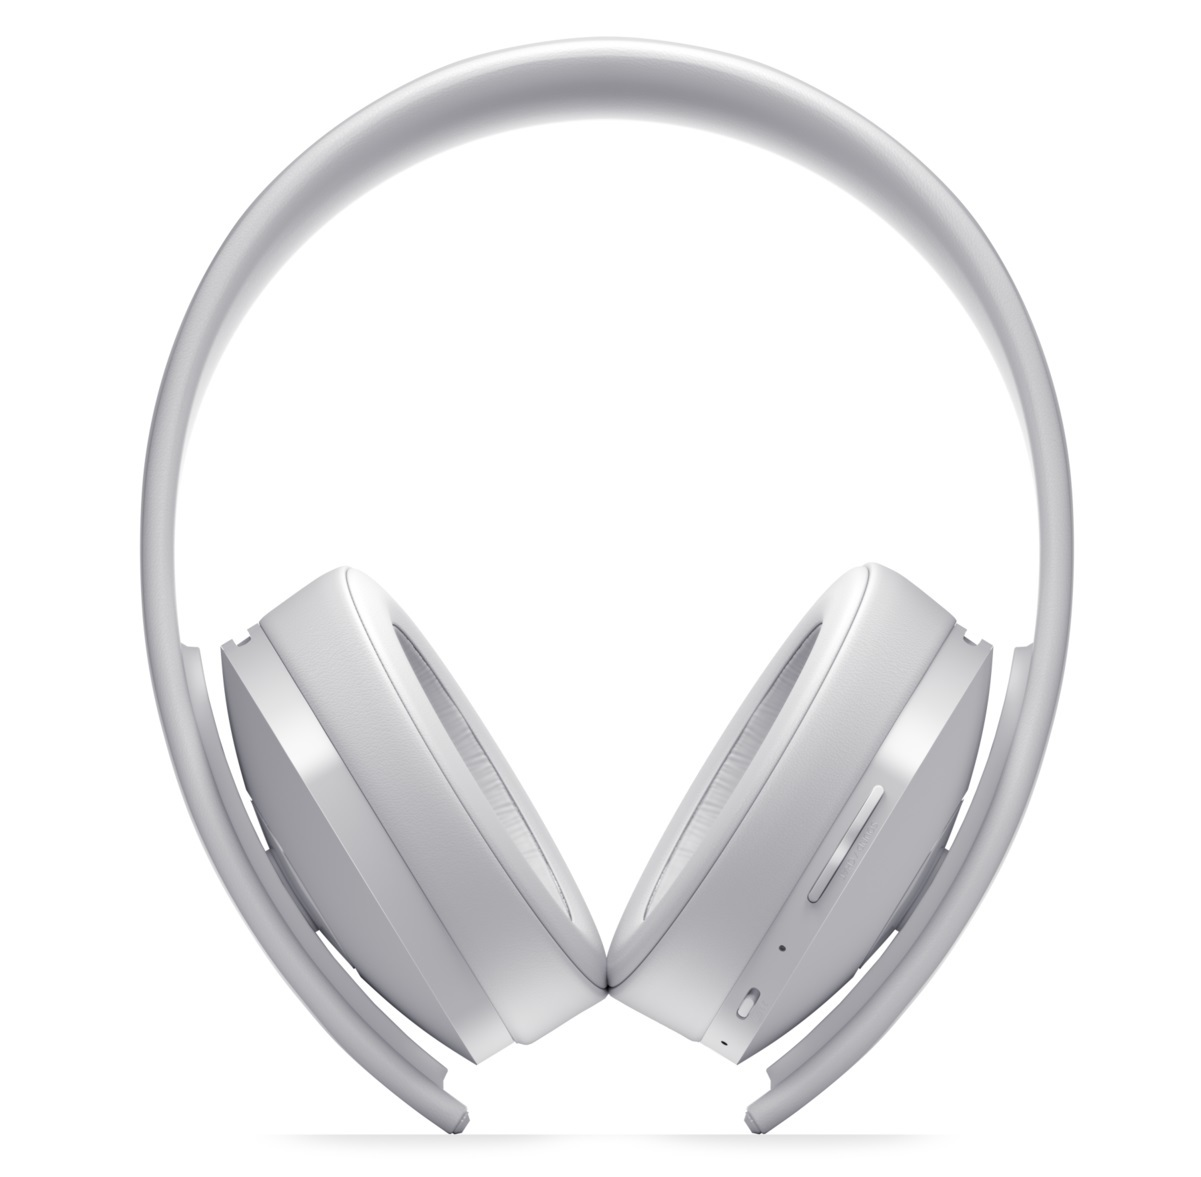 PlayStation Gold Wireless 7.1 Gaming Headset - White for PS4 image